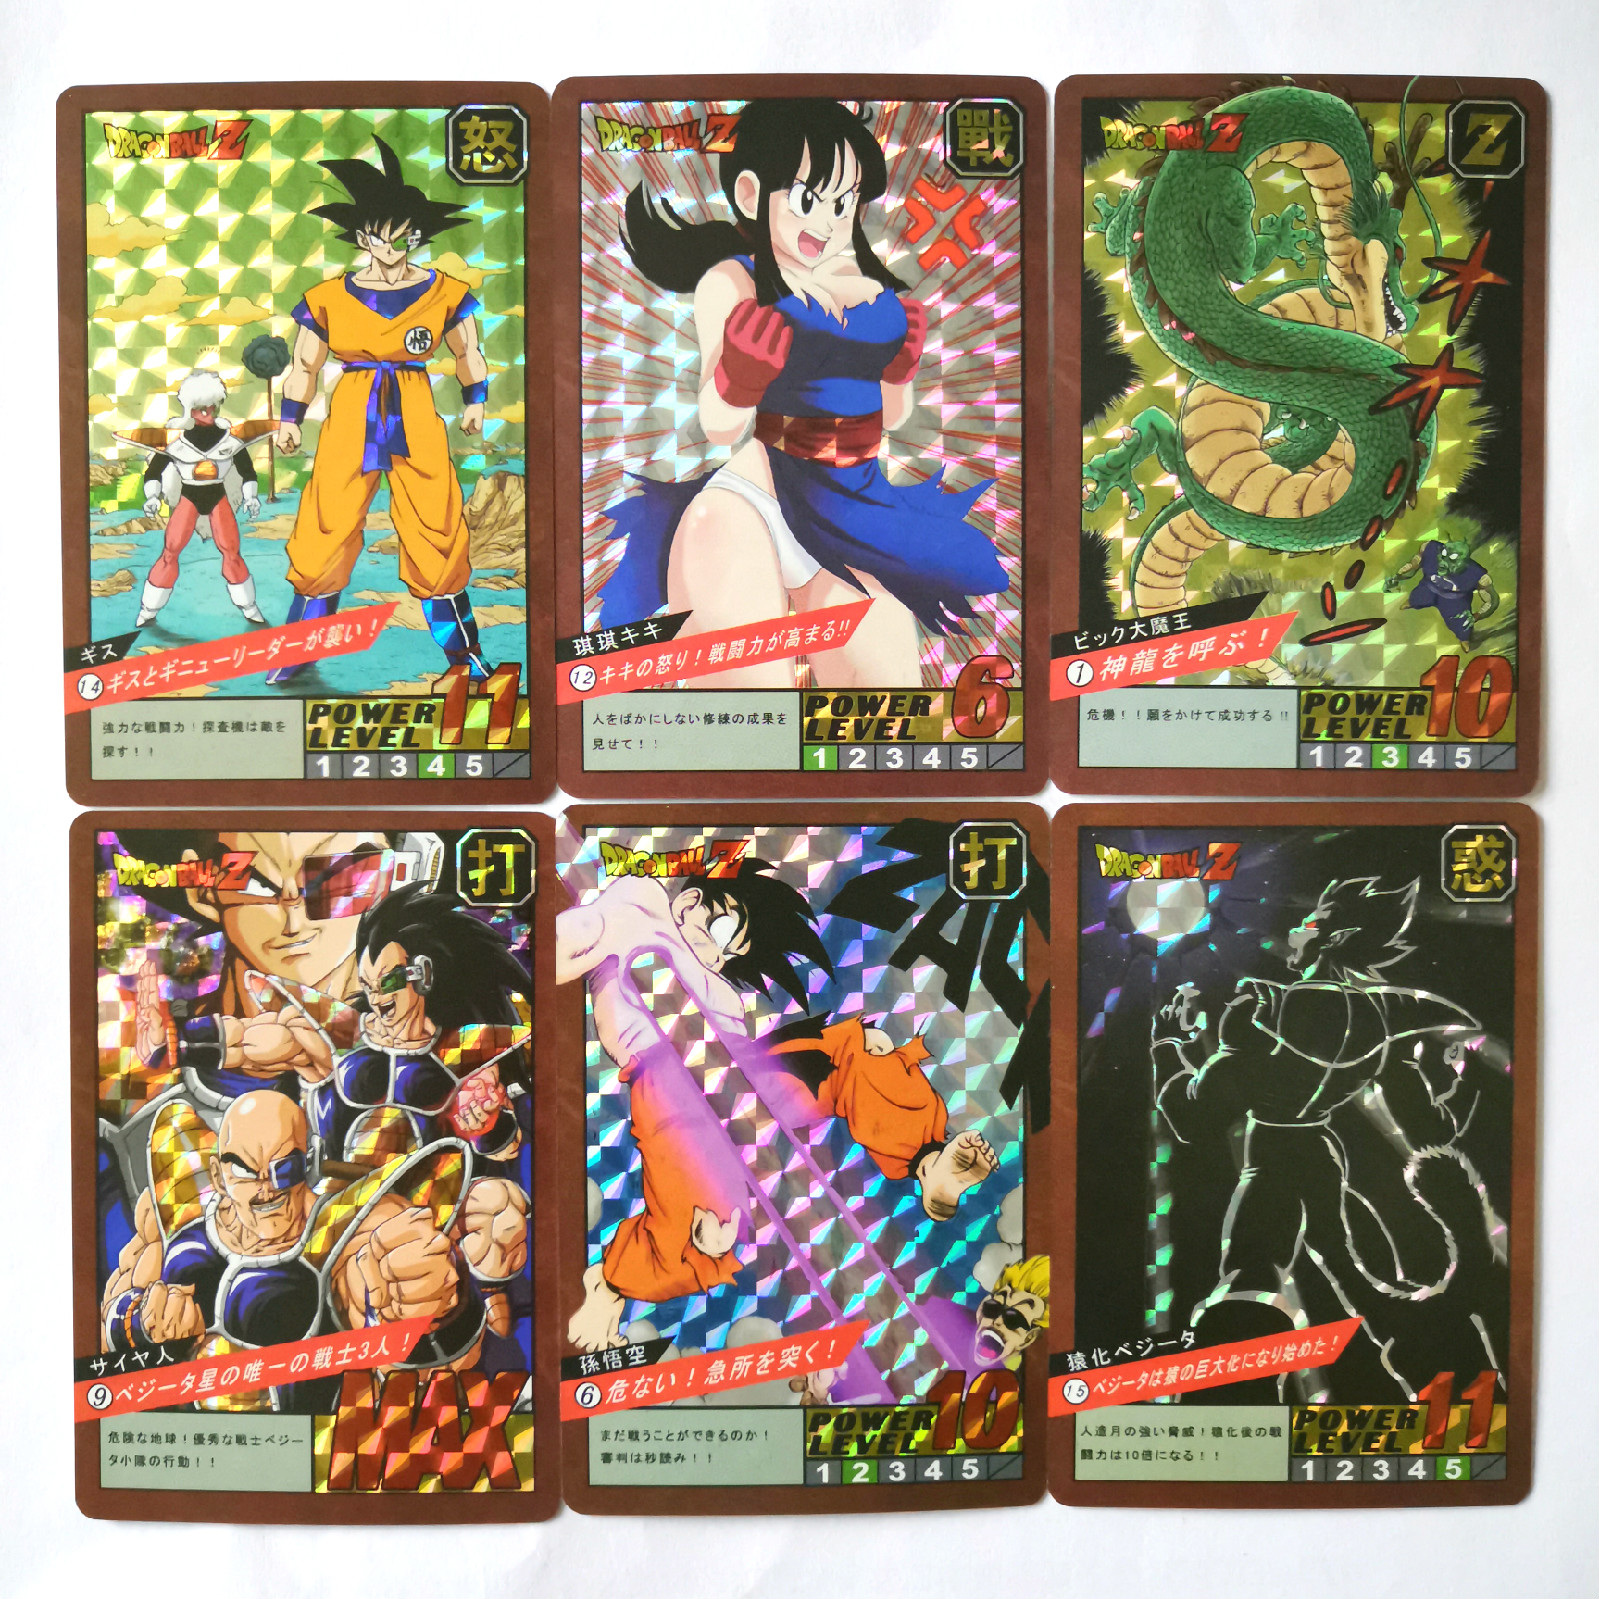 15pcs/set Super Dragon Ball Limited To 100 Sets Heroes Battle Card Ultra Instinct Goku Chichi Super Game Collection Anime Cards